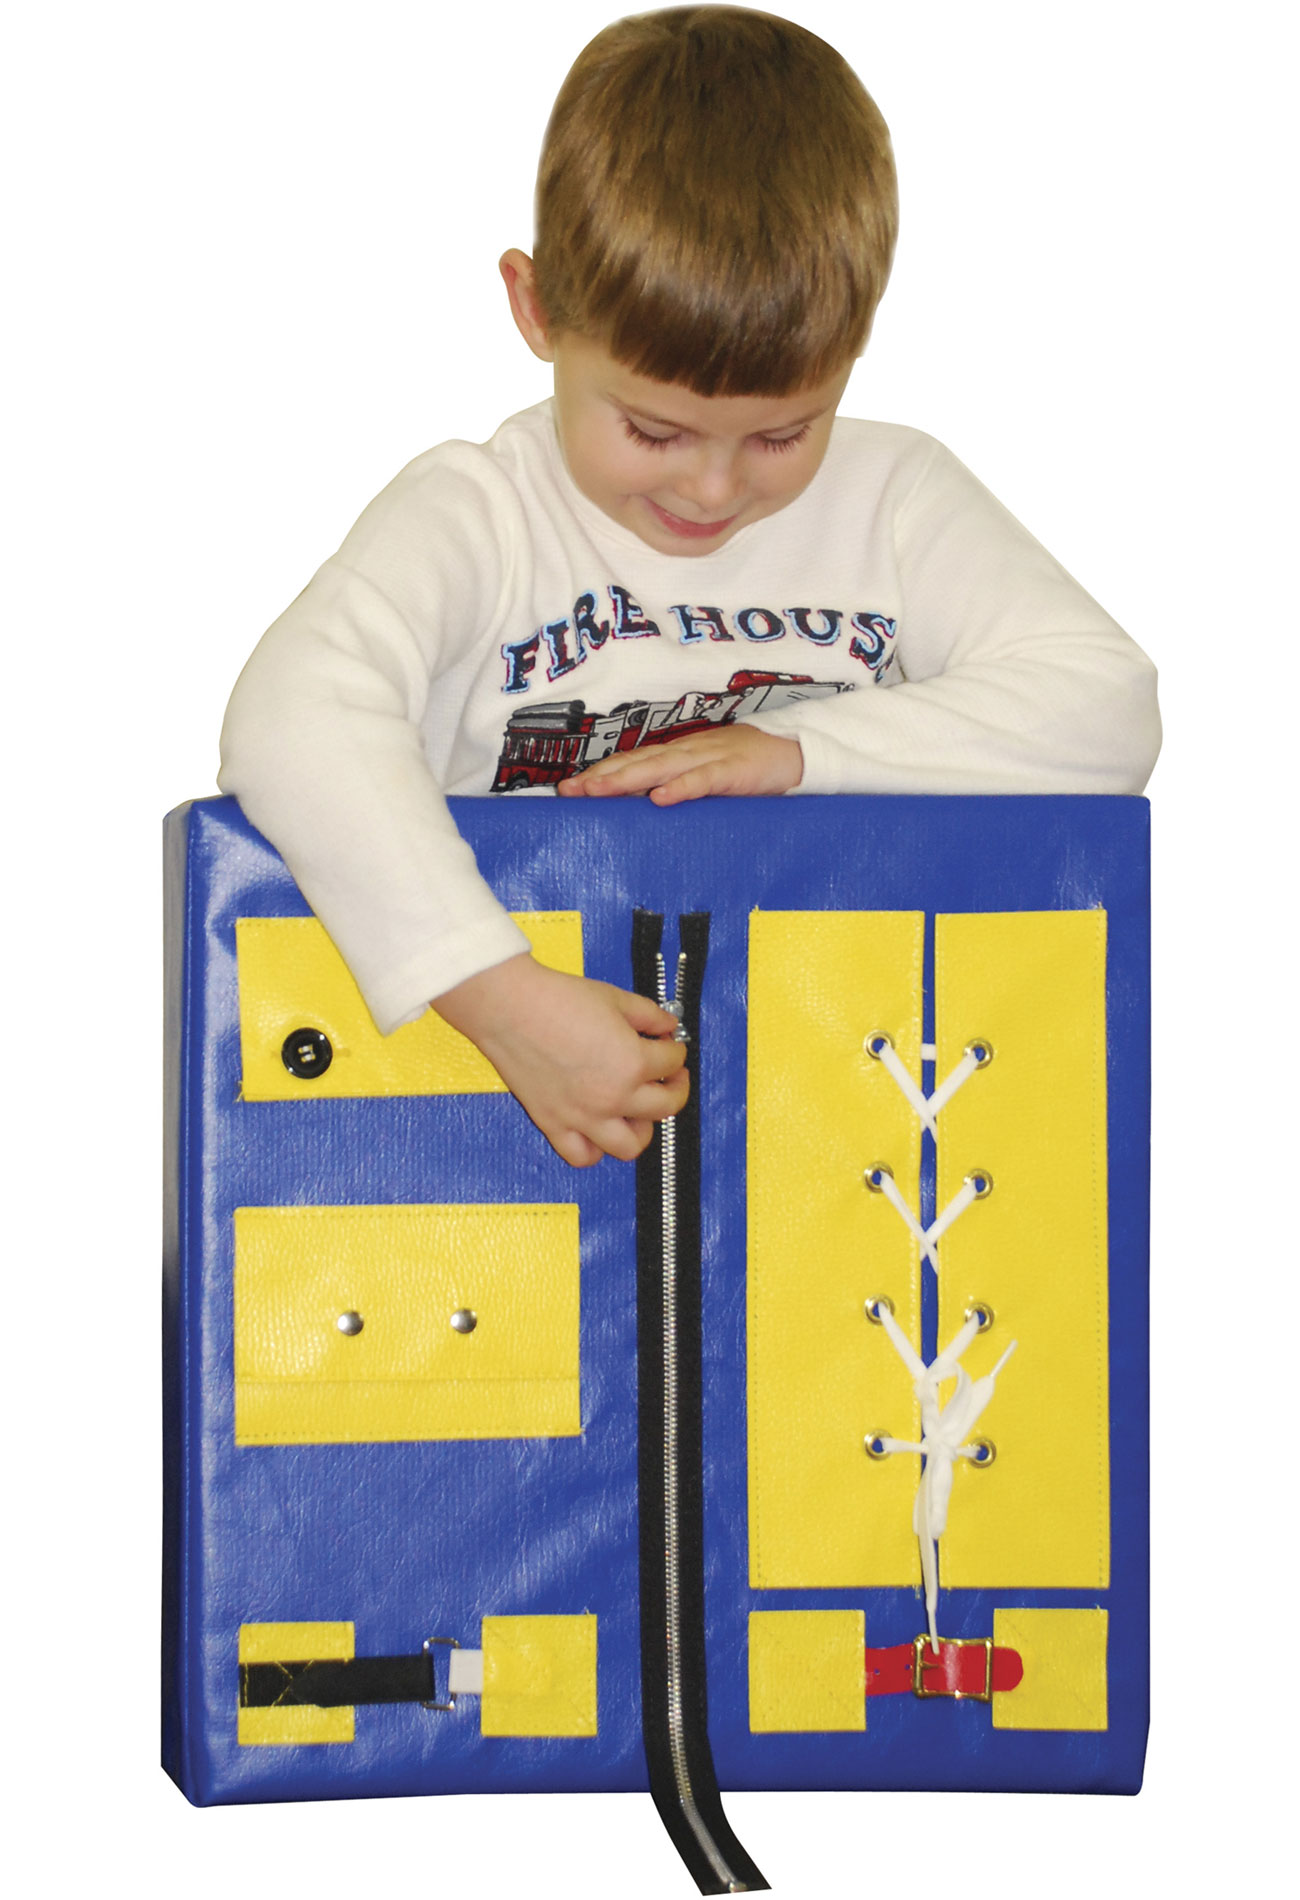 Ecr4kids Room Play Softzone Dress Me up and Learn Panel Toy at Sears.com